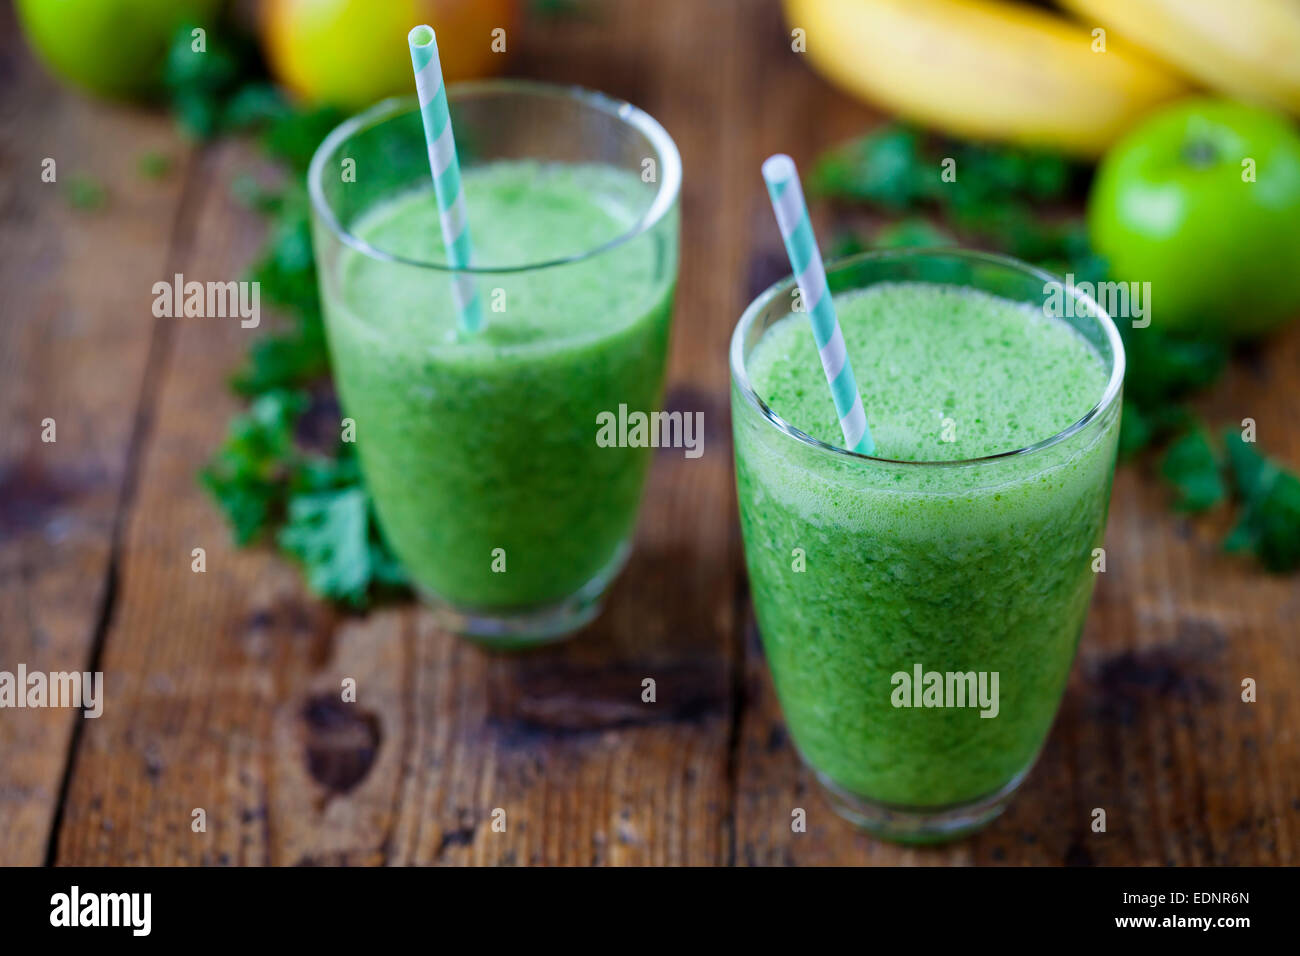 Green smoothies with kale and apples - Stock Image